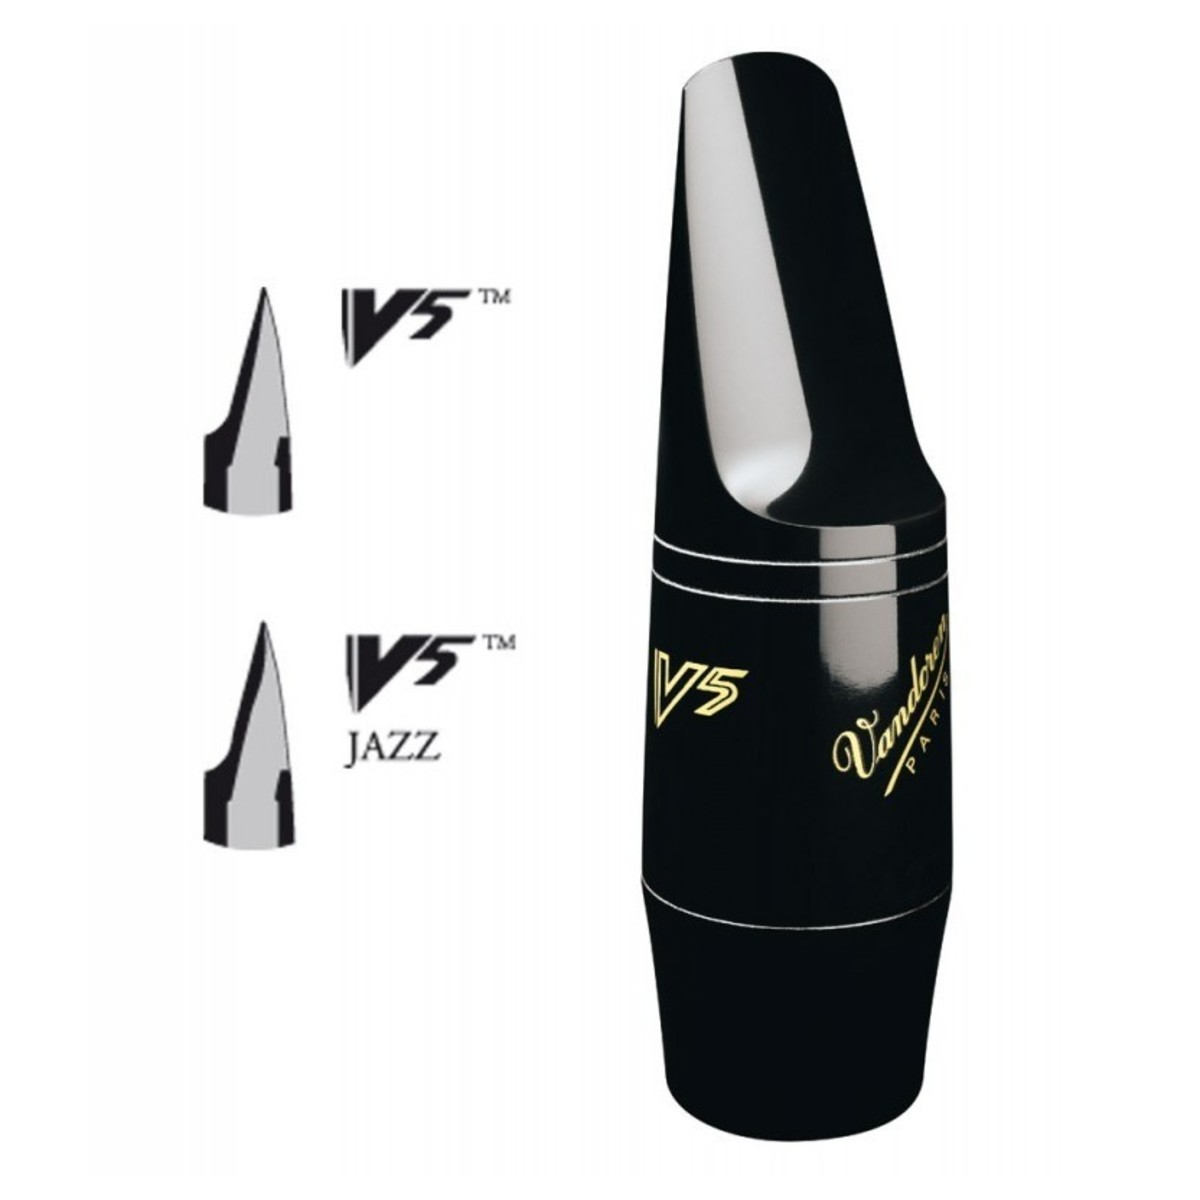 vandoren v5 a45 alto sax jazz mouthpiece at gear4music. Black Bedroom Furniture Sets. Home Design Ideas